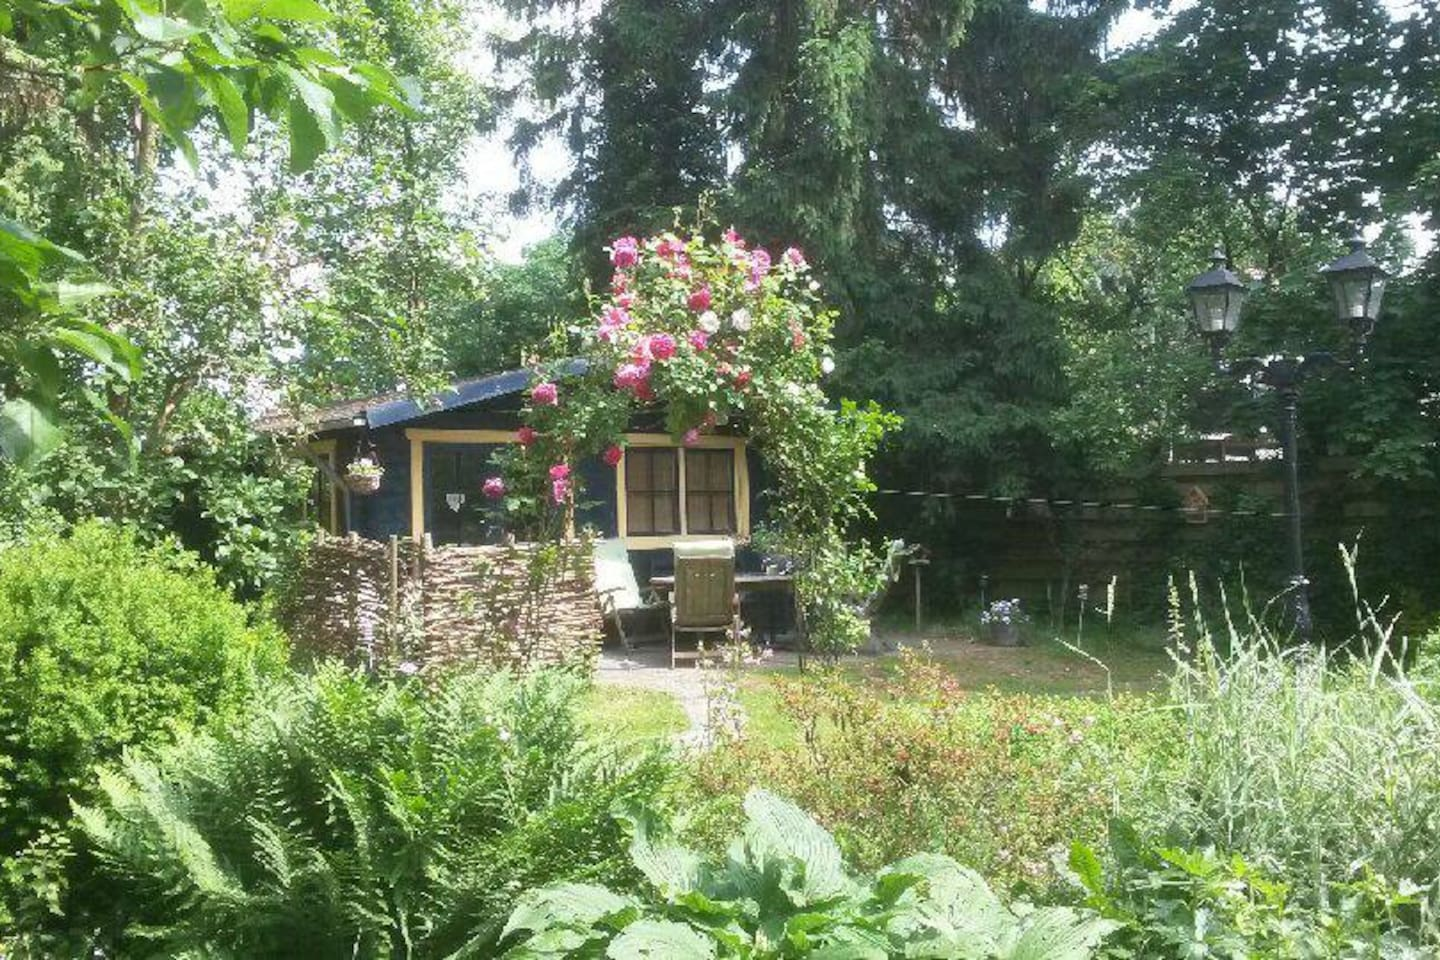 in a beautifull garden 1400 m2 a lovely tiny house with all facilities